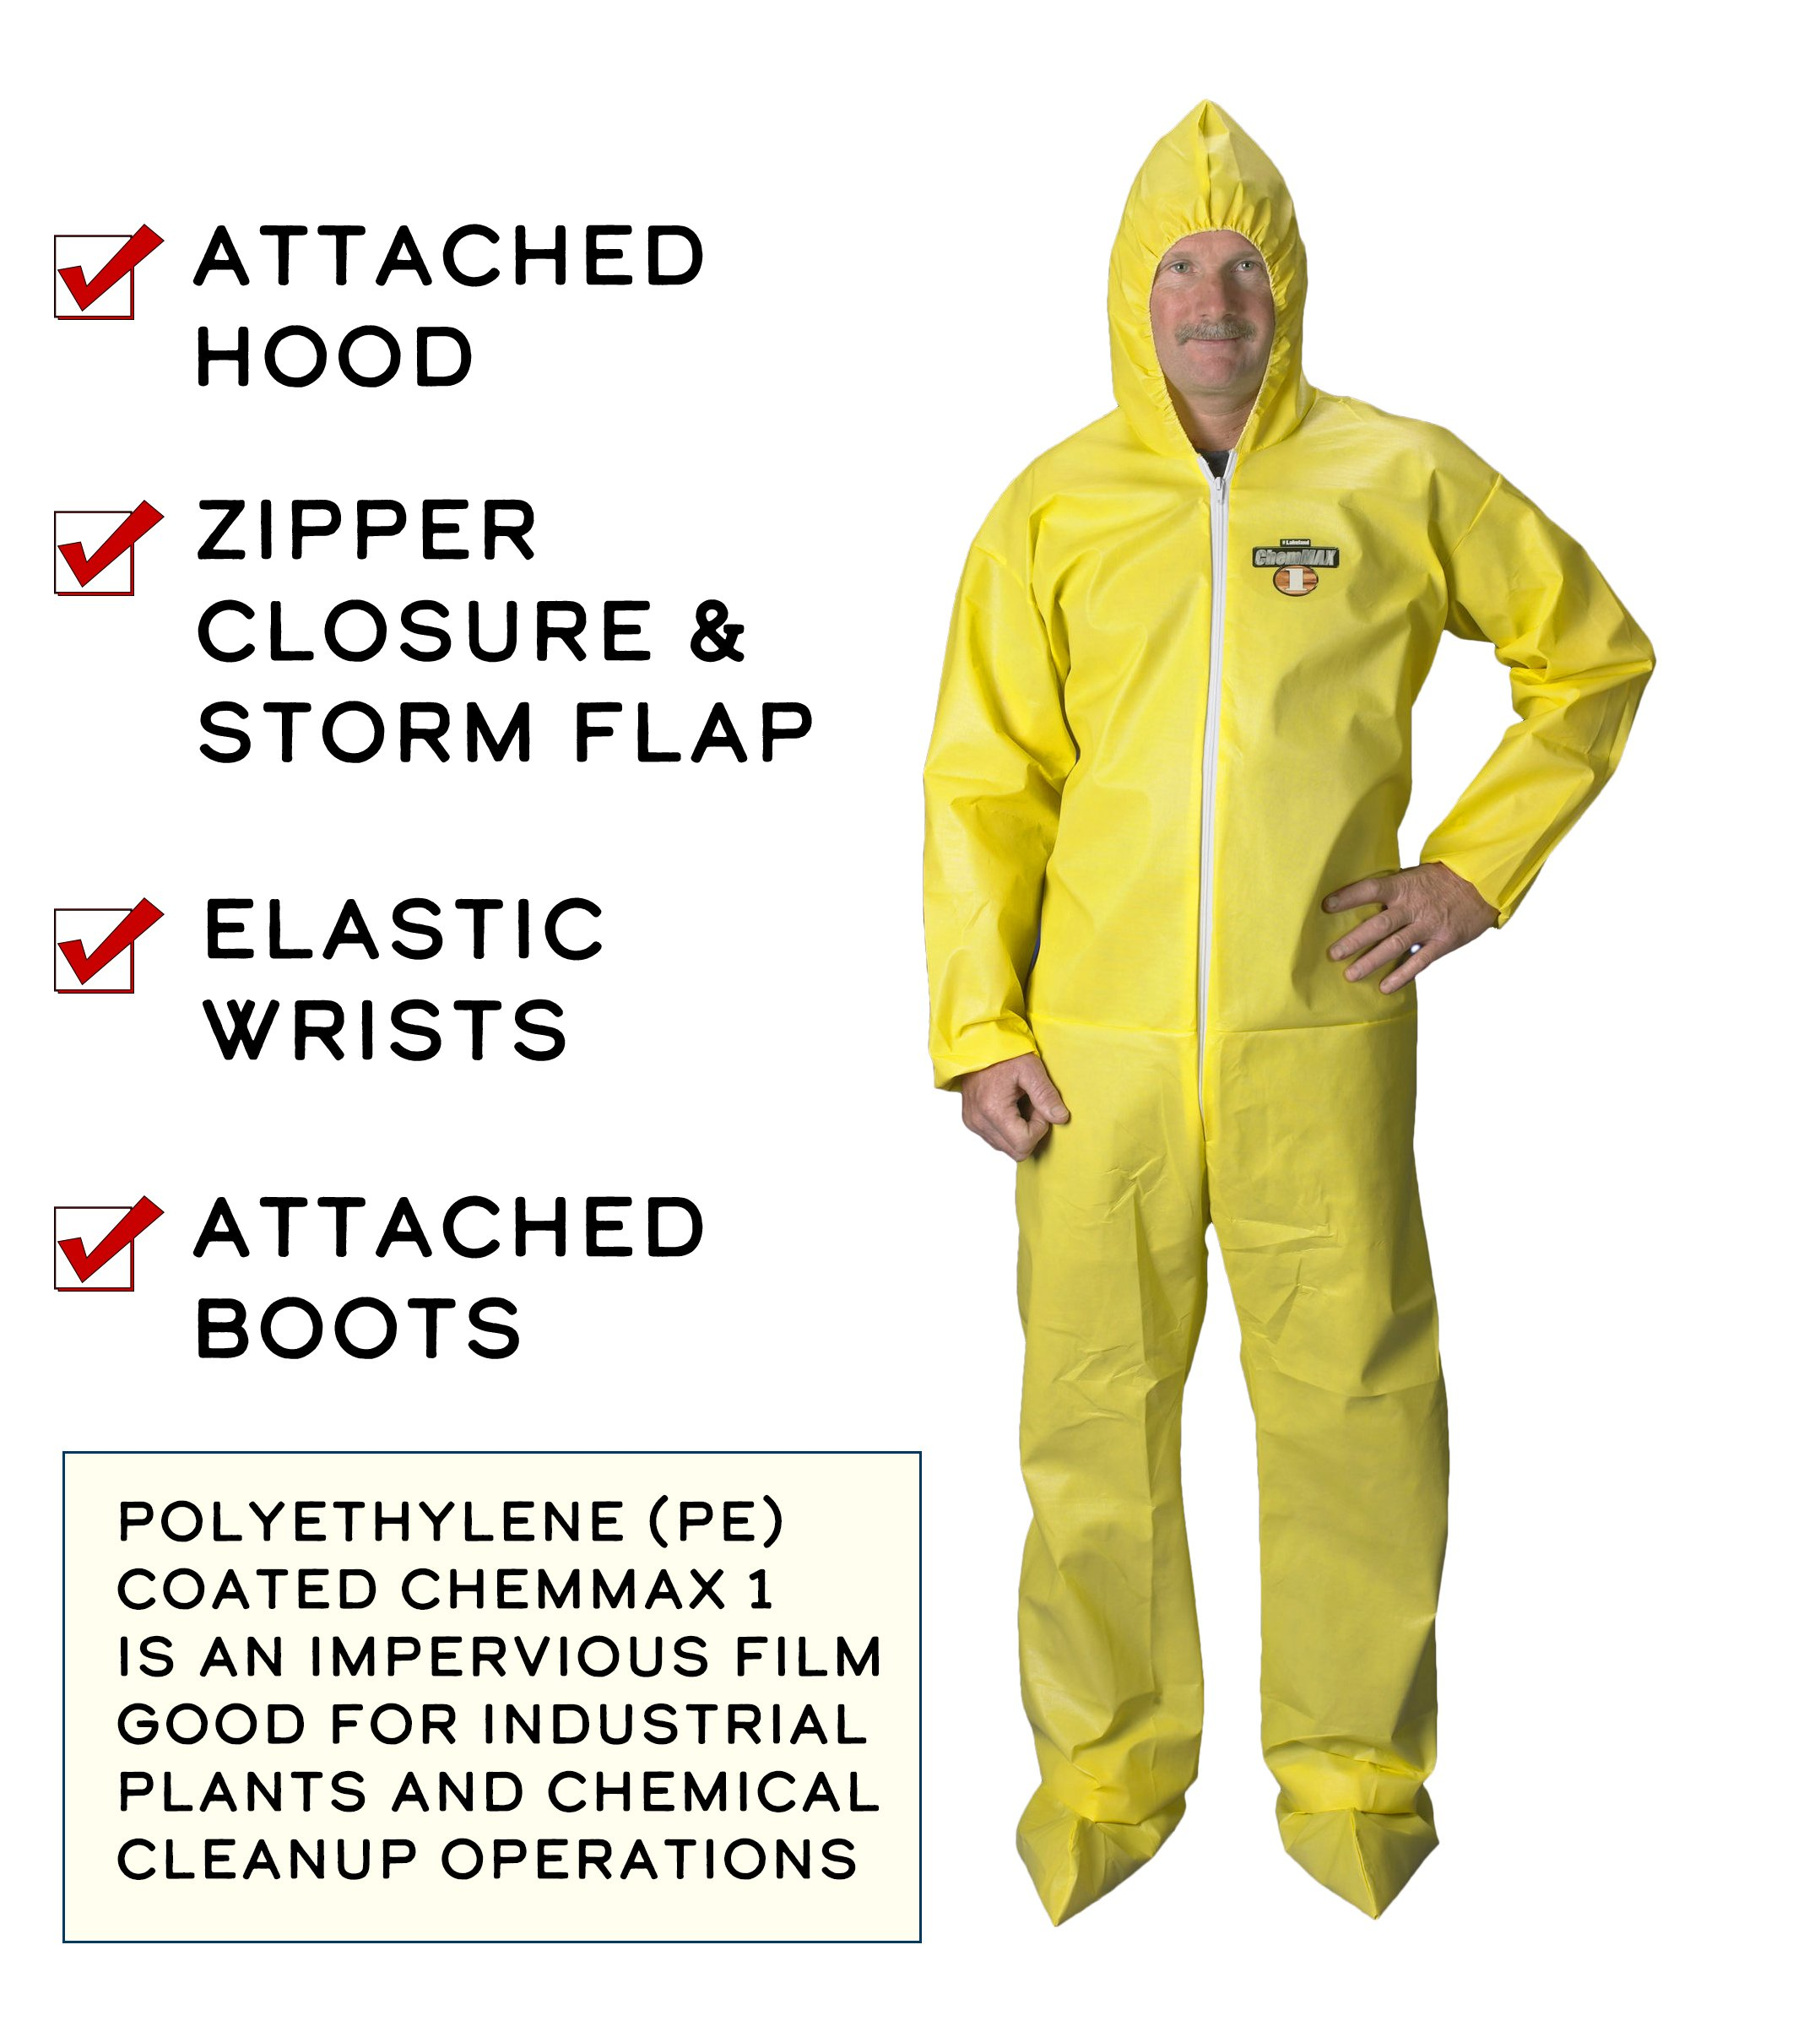 Lakeland ChemMax 1 Polyethylene/Polypropylene Serged Seam Disposable Coverall with Hood and Boots, Elastic Cuff, 2X-Large, Yellow (Case of 25) by Lakeland Industries Inc (Image #2)